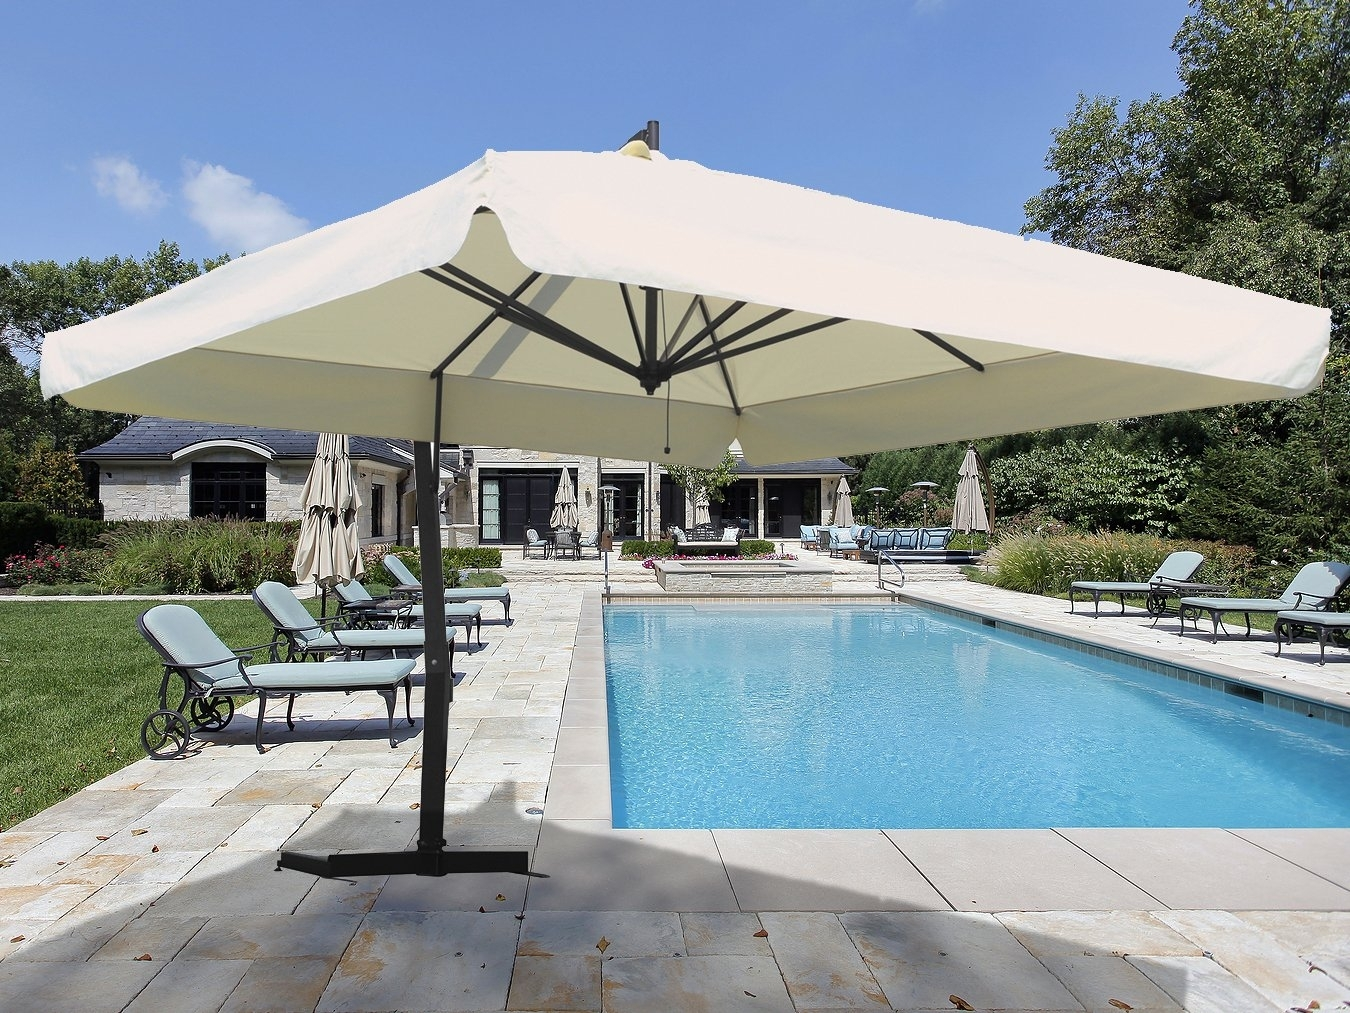 Patio Patio Unbrellas Commercial Patio Umbrellas Wholesale Patio In Commercial Outdoor Pool Furniture Good Commercial Outdoor Pool Furniture